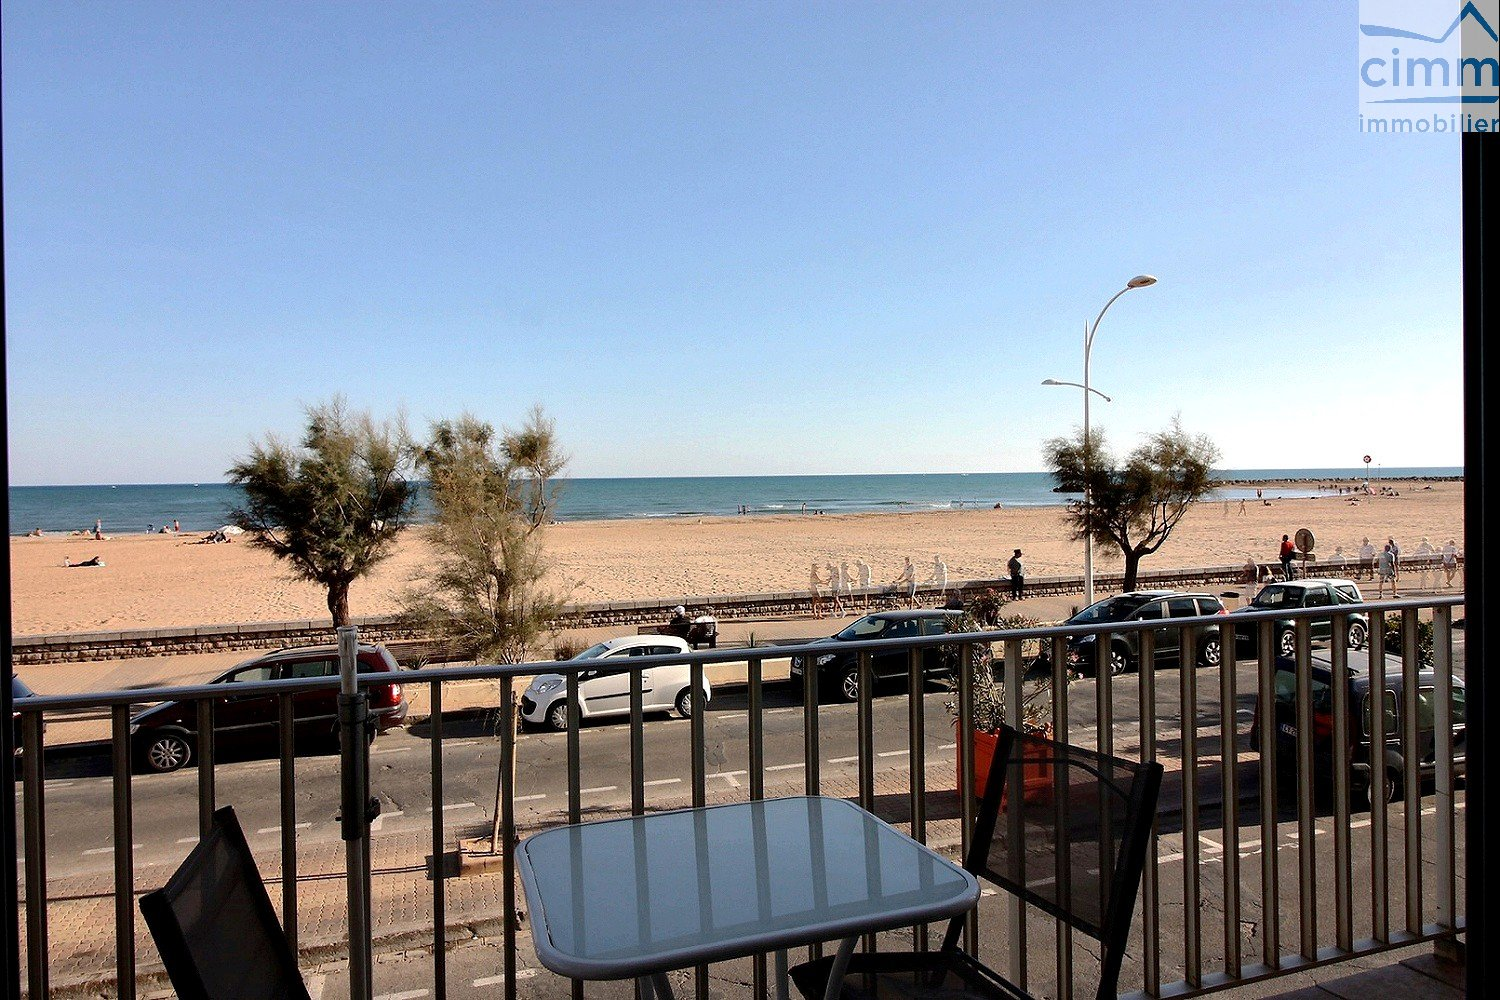 Image - Appartement - VALRAS PLAGE - Location Vacances - 40m² - IMMOPLAGE VALRAS-PLAGE